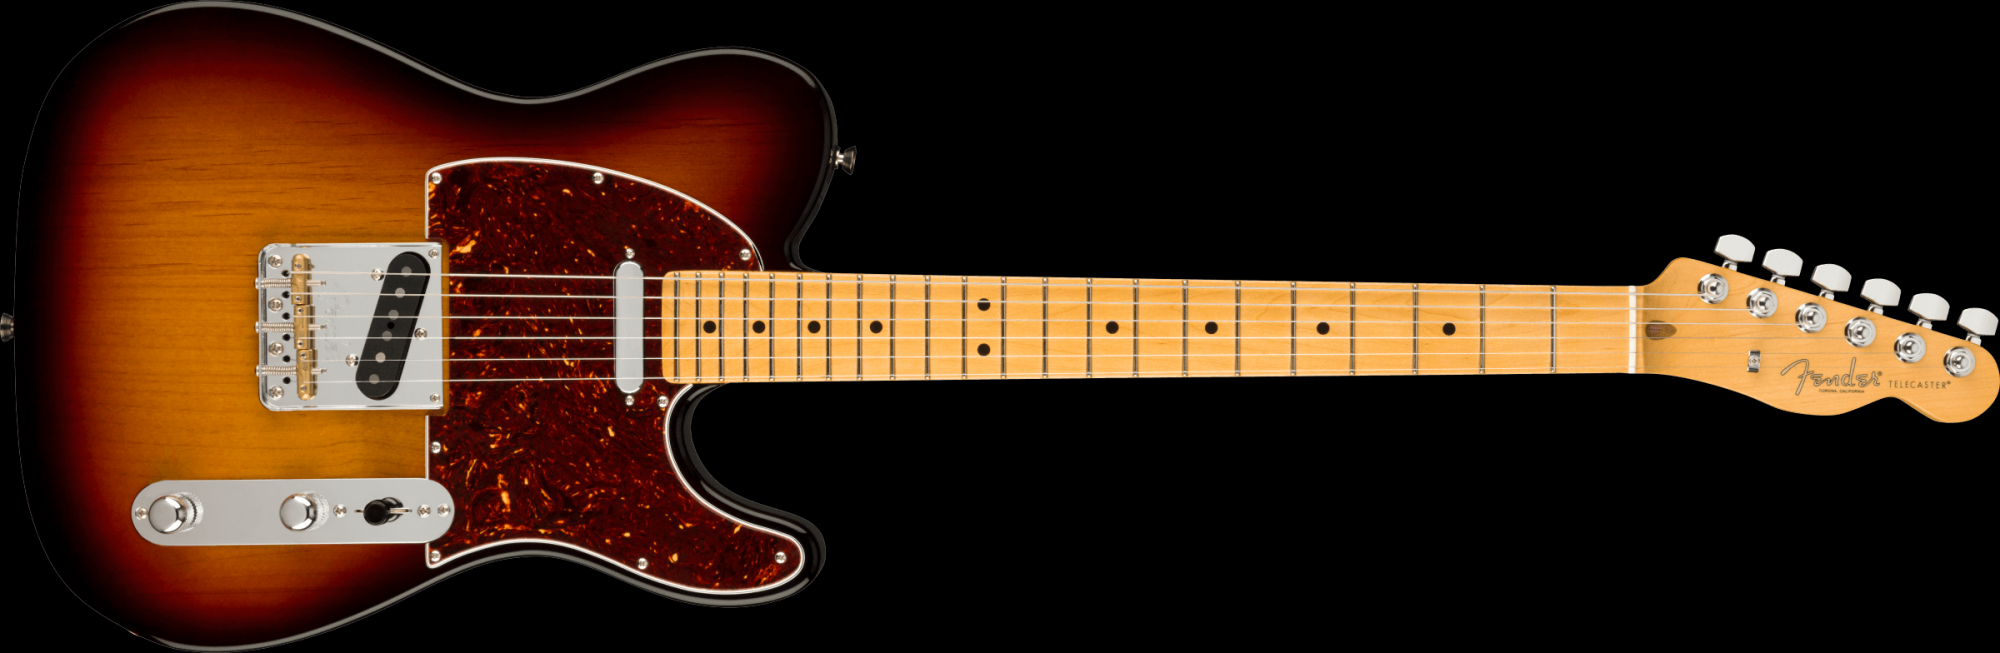 Fender American Professional II Telecaster, Maple Neck